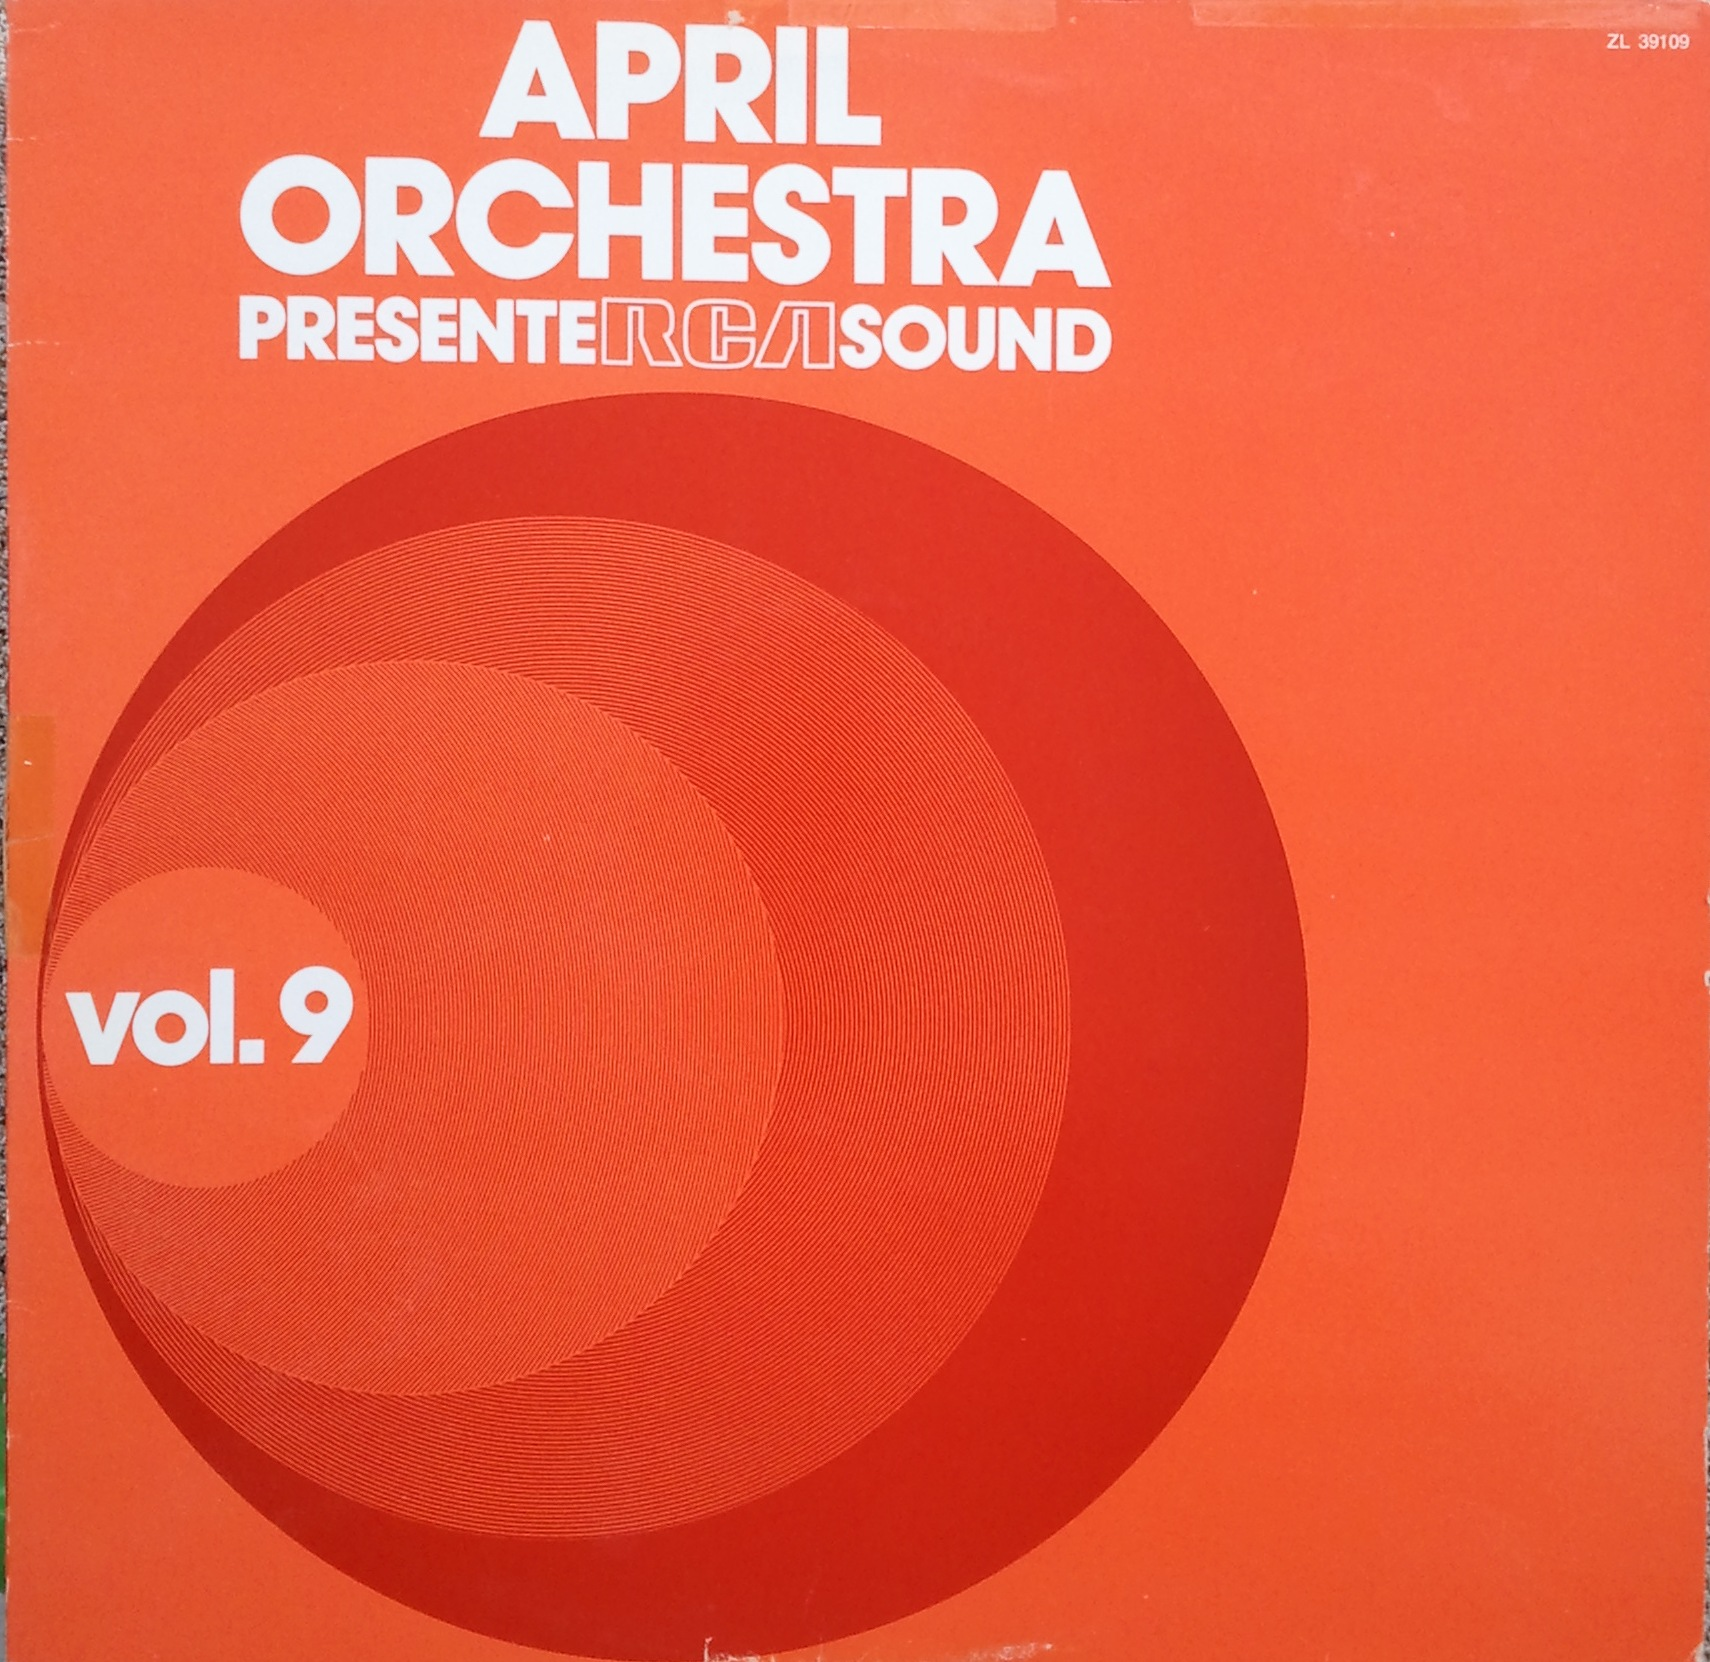 Copertina di Antonio Riccardo Luciani April Orchestra Présente Rca Sound Vol. 9